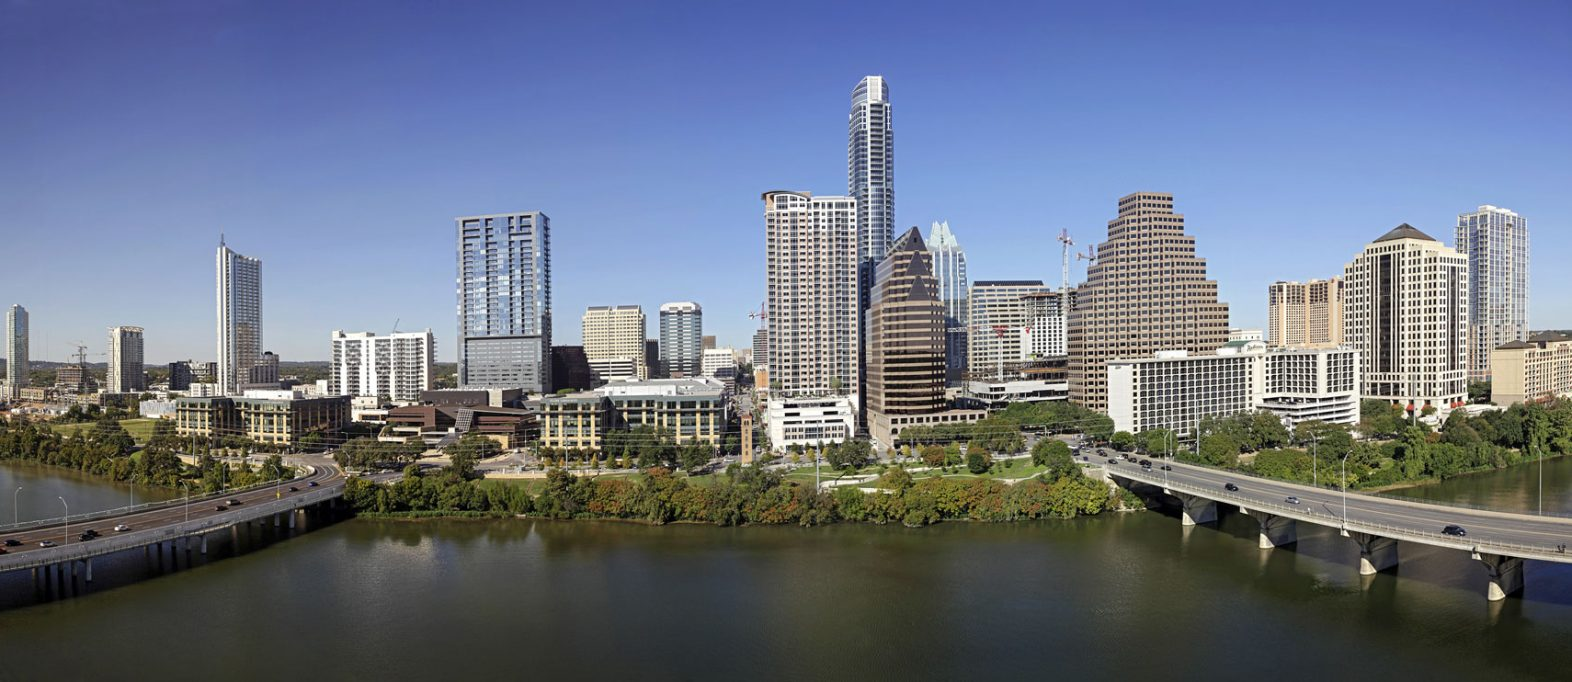 Austin Texas (credit Adobe Stock ID: 58689322)